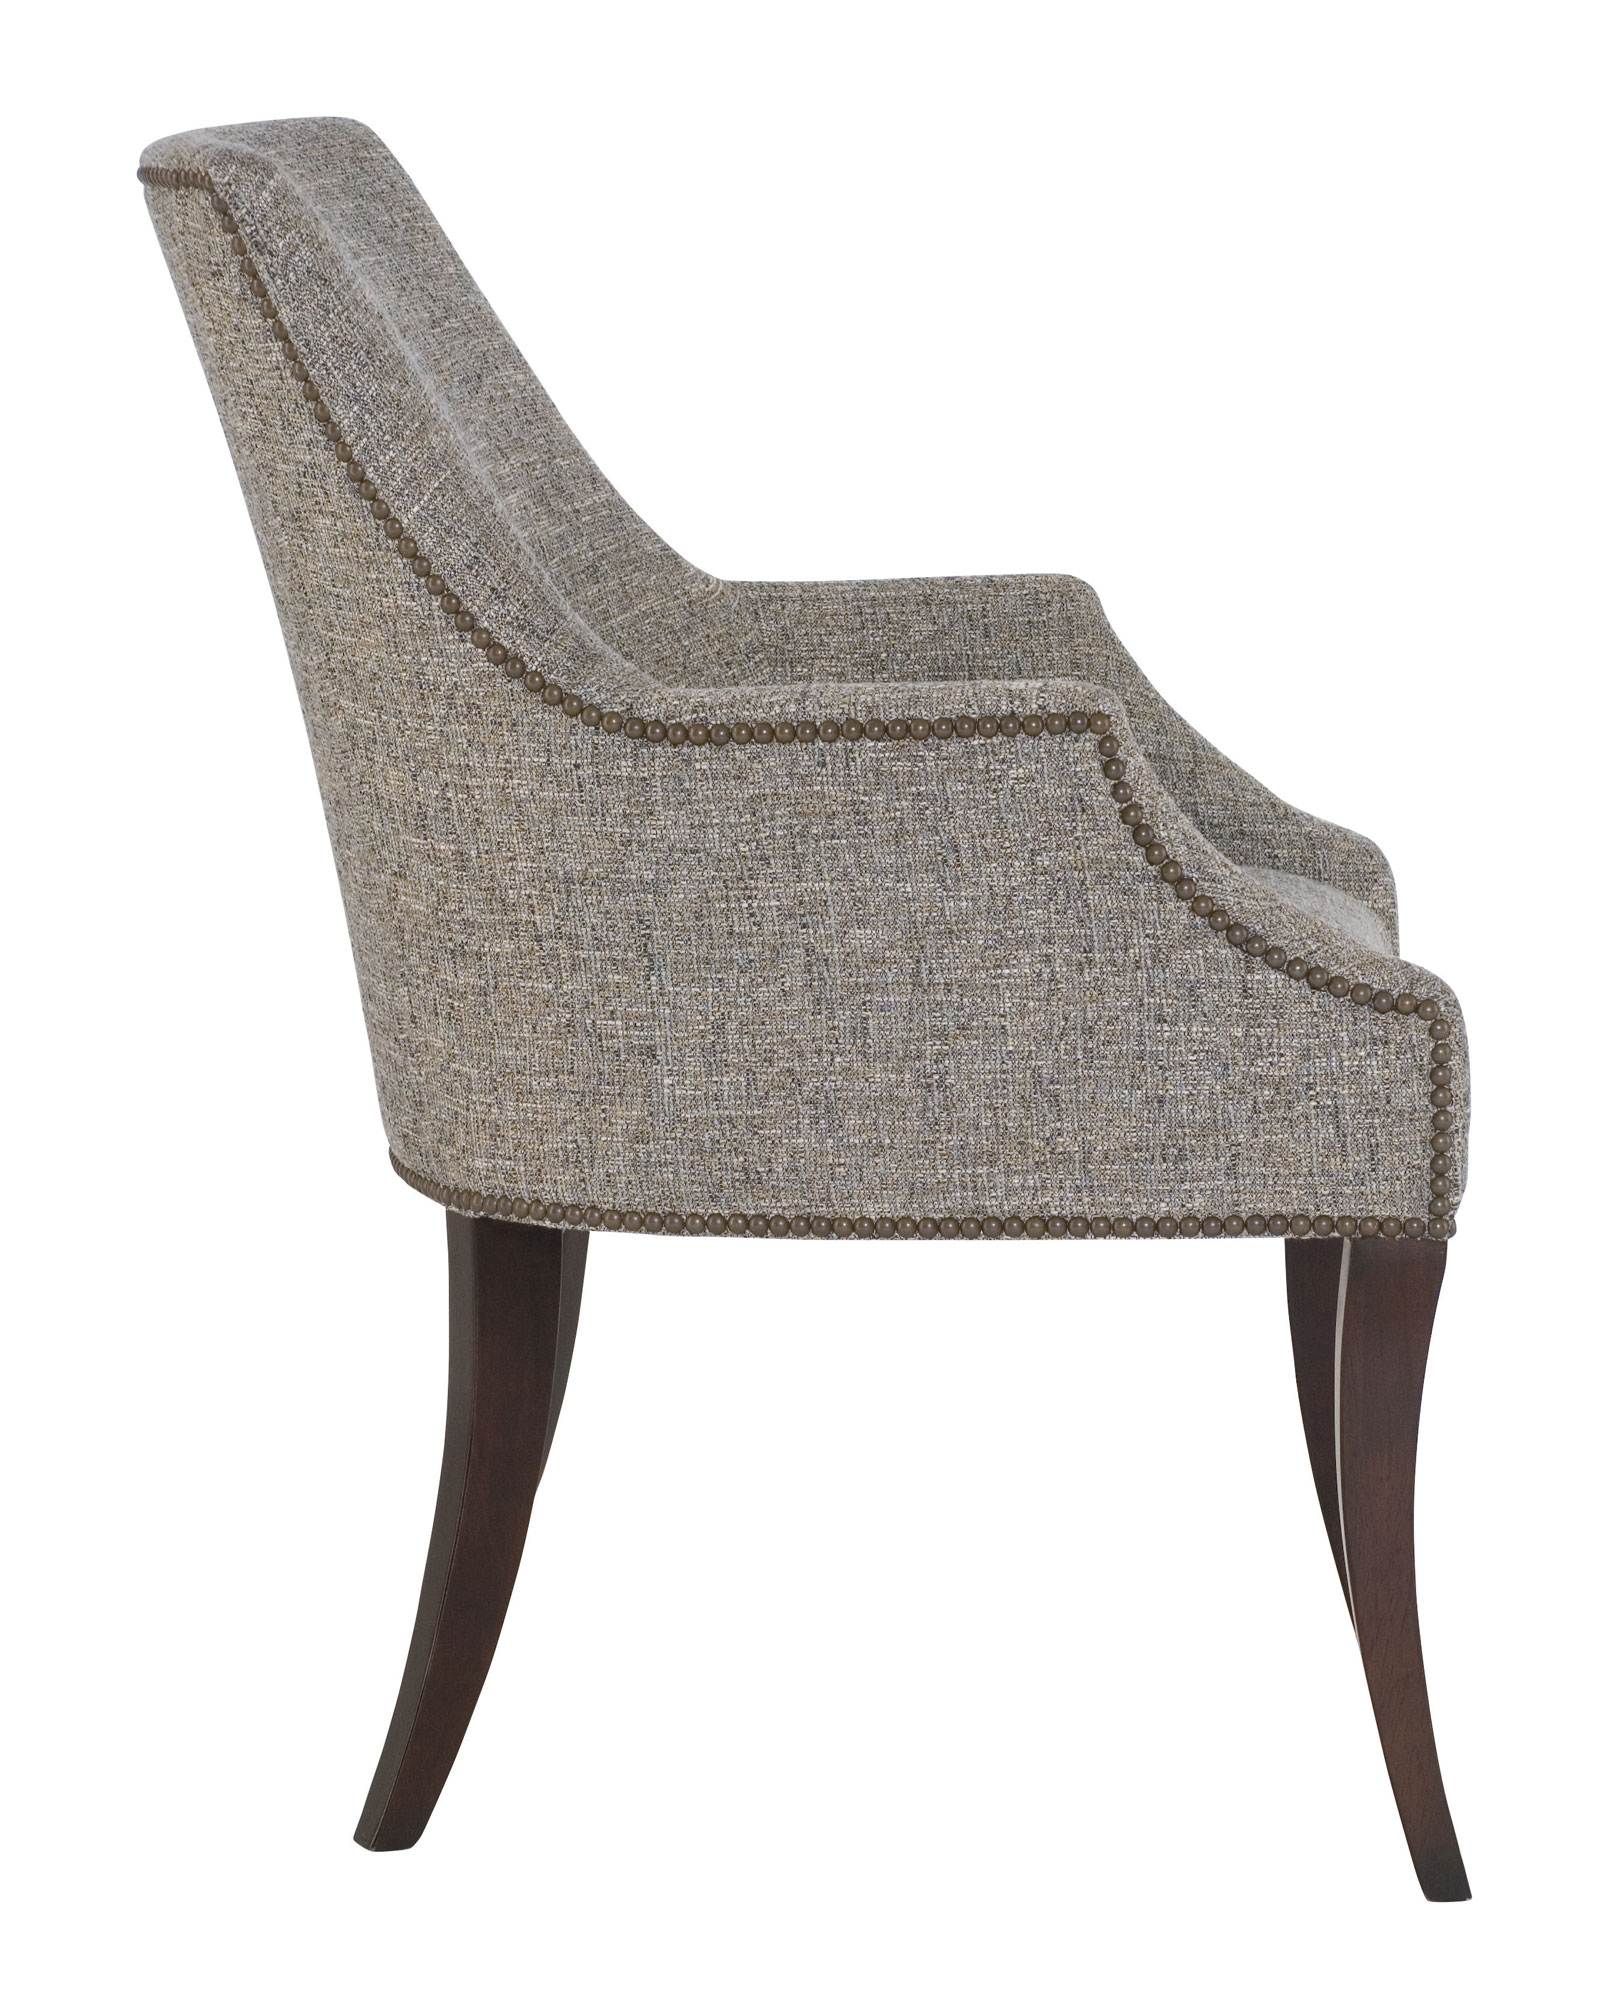 upholstered chair with nailhead trim sofa and covers australia dining | bernhardt